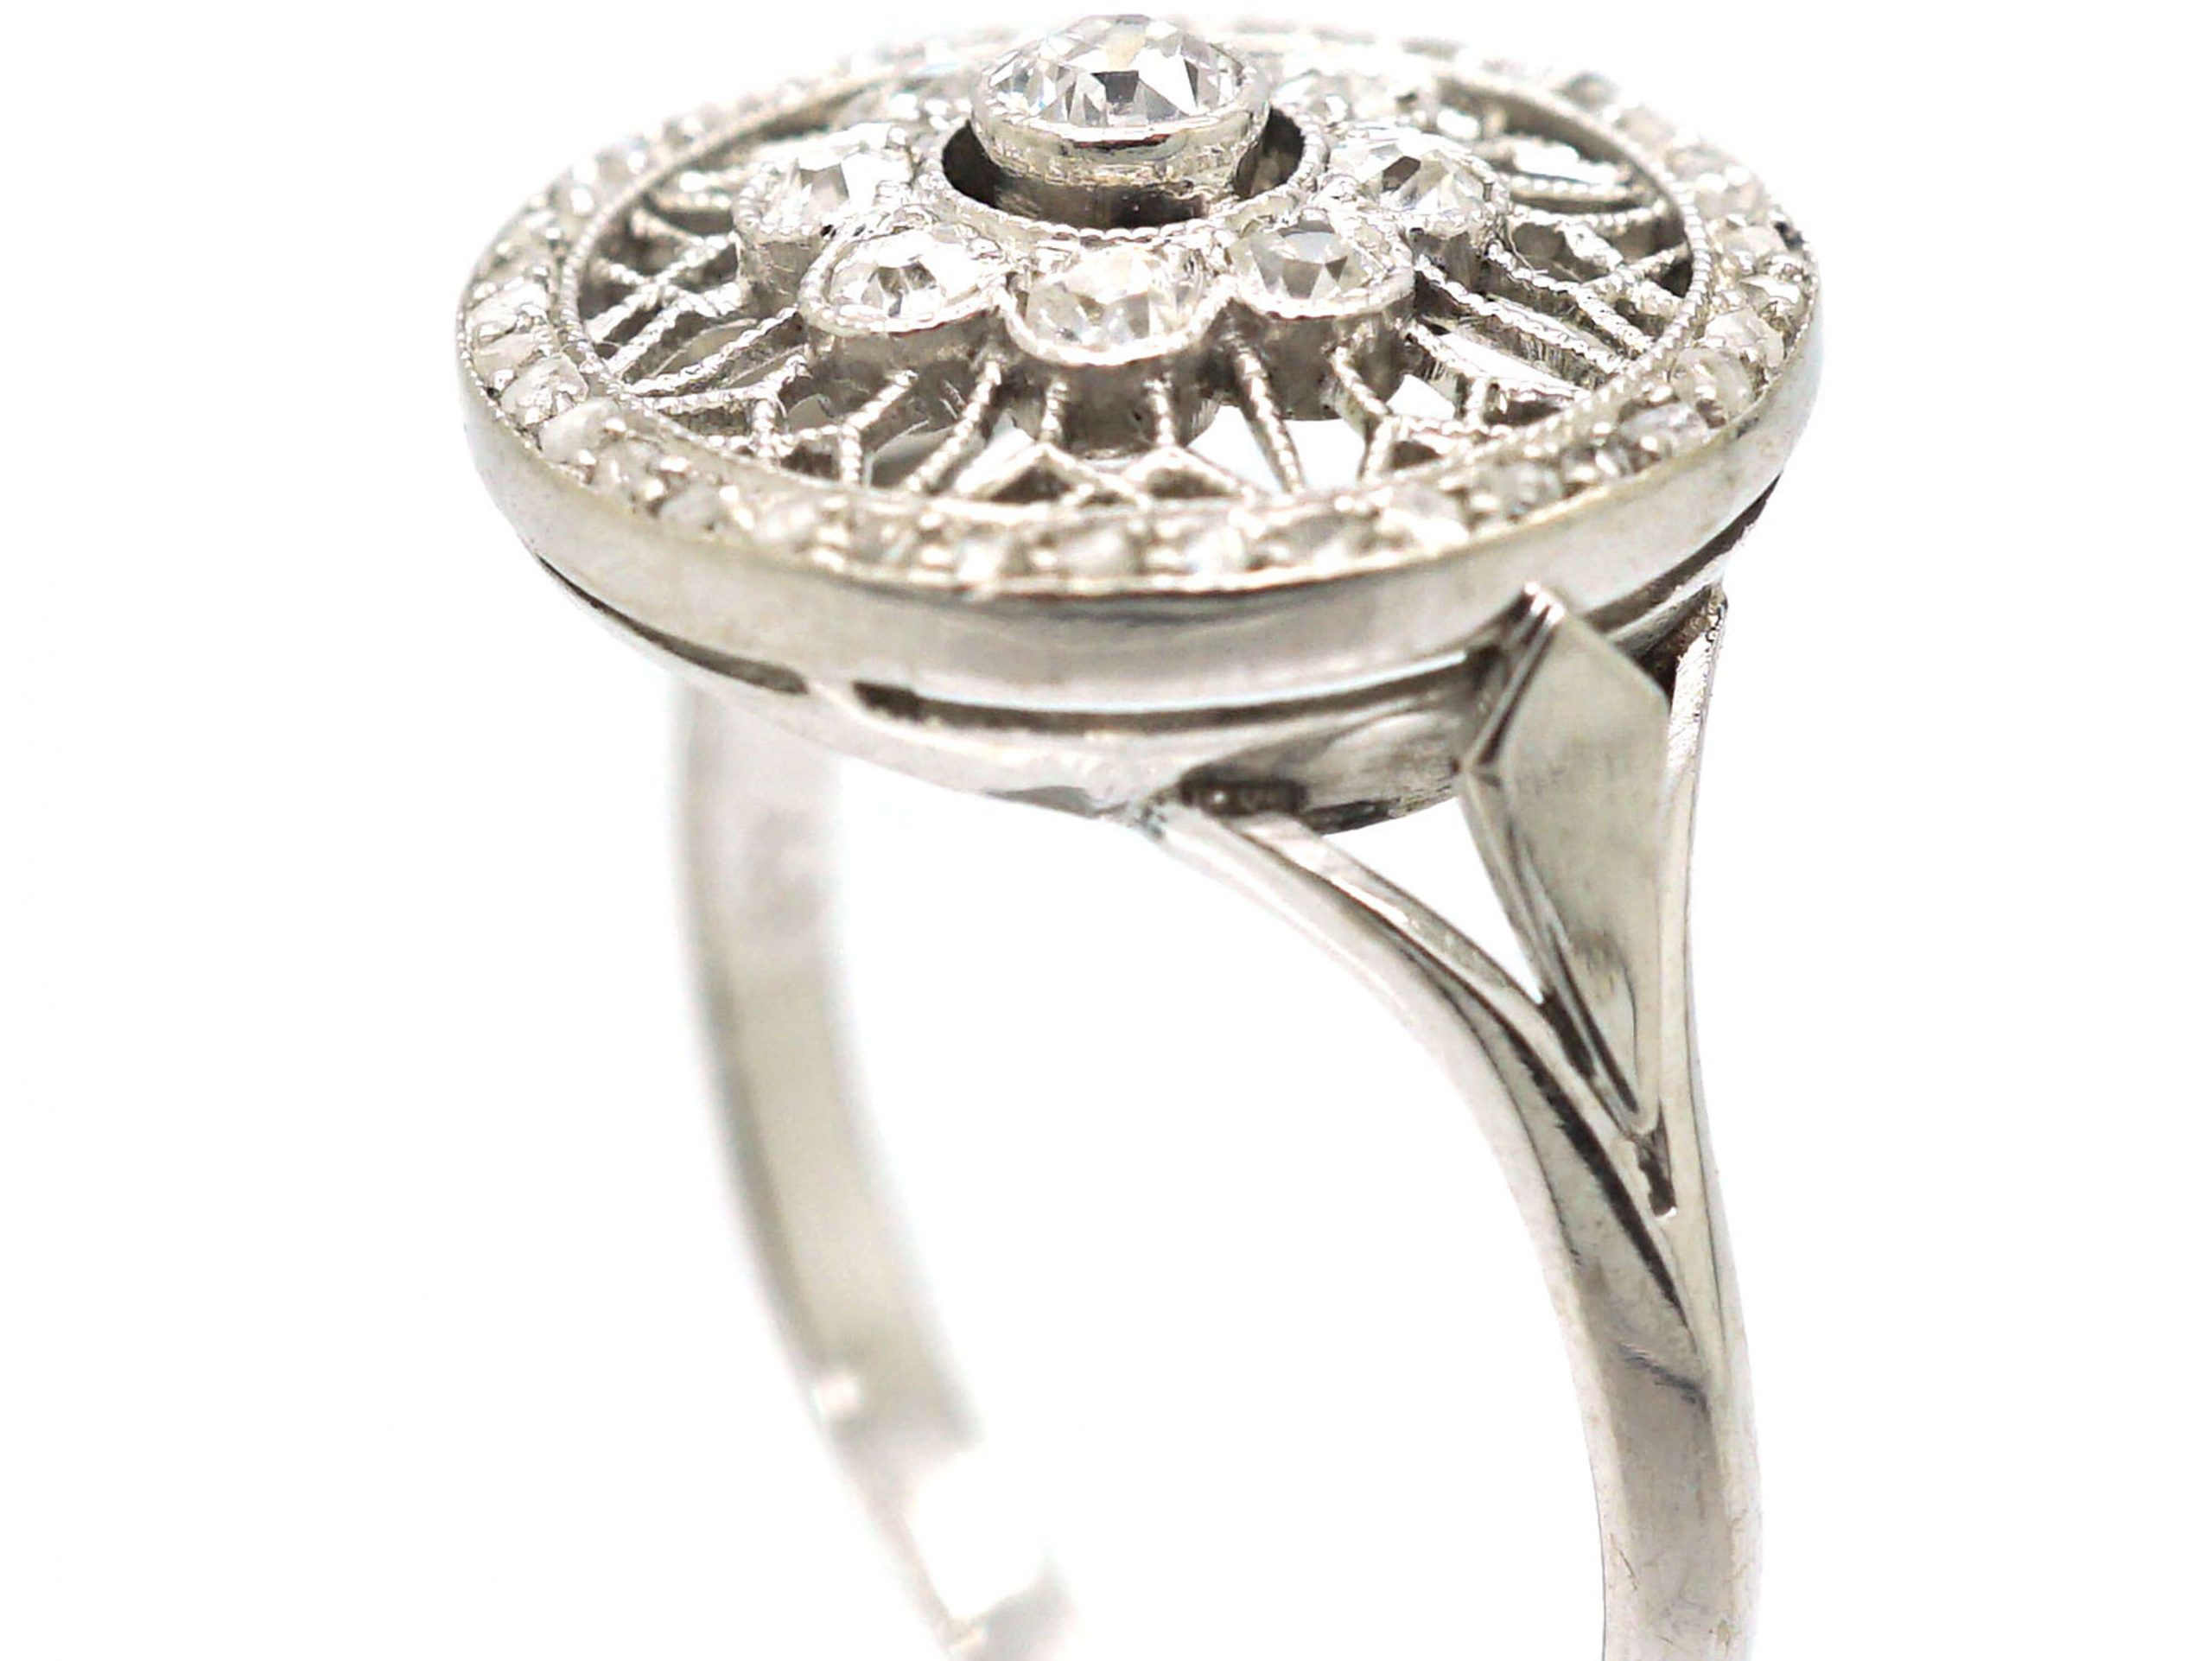 Edwardian Platinum & Diamond Cluster Ring with Openwork Detail and a Rose Diamond Border